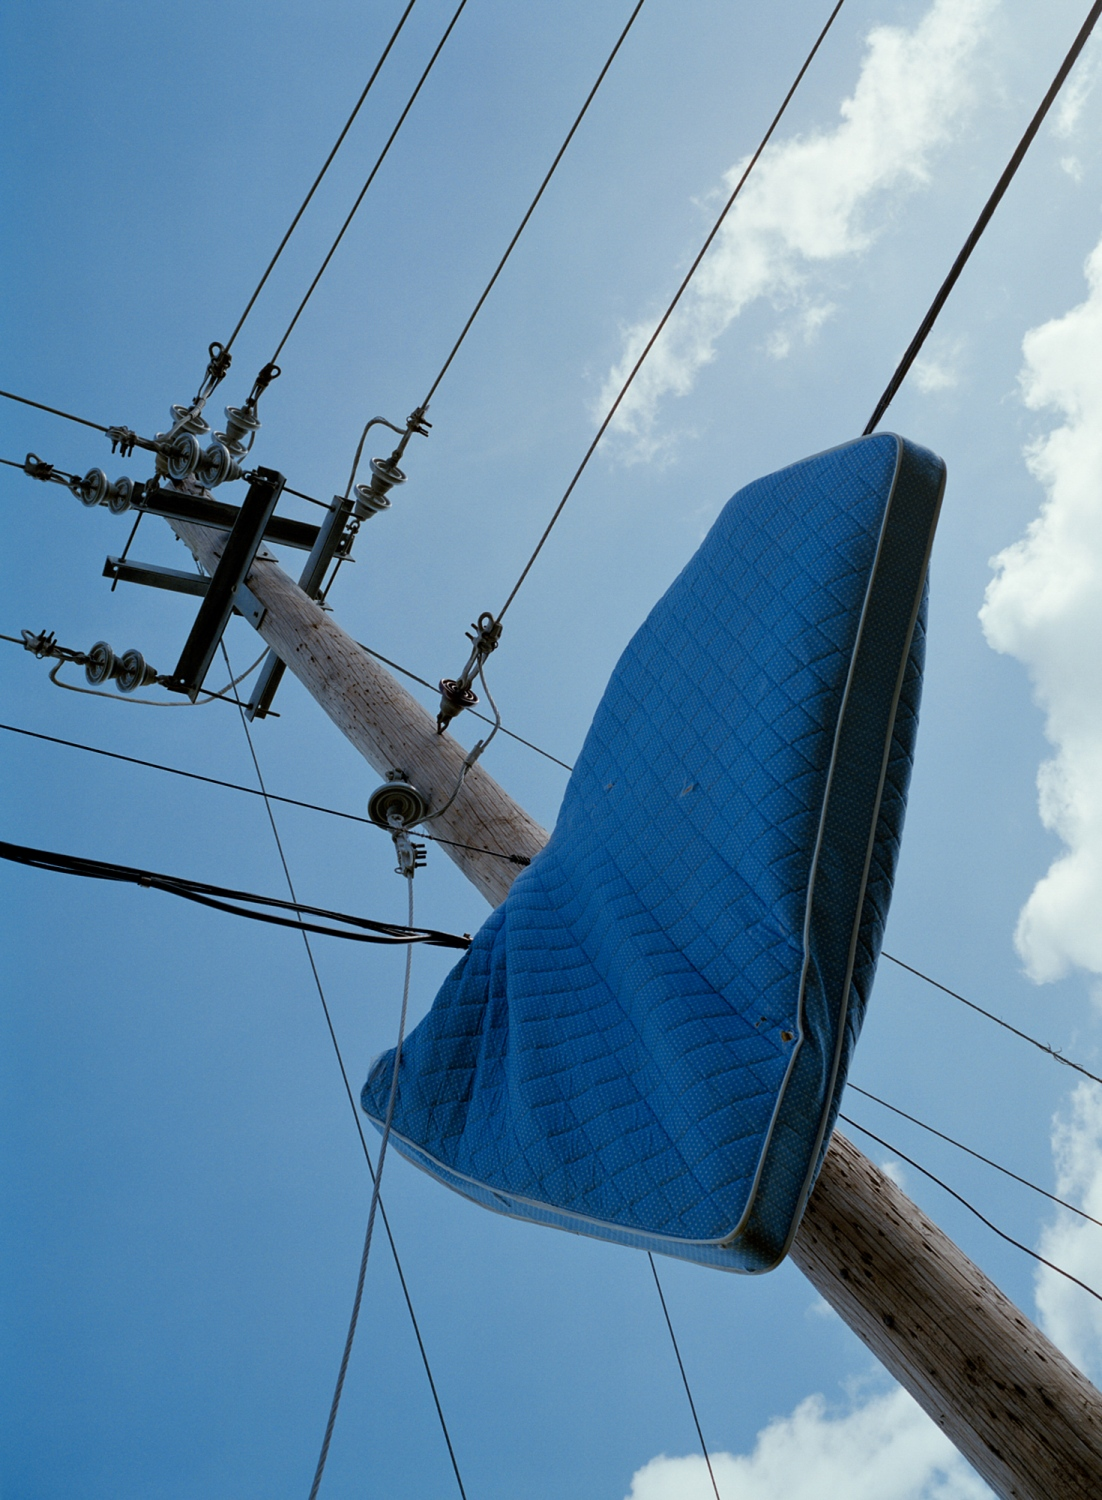 A mattress, blown onto power lines, as a result of the storm's category-five winds, still hangs there three months after Maria made its way through the island. Ponce, Puerto Rico, December 2017.